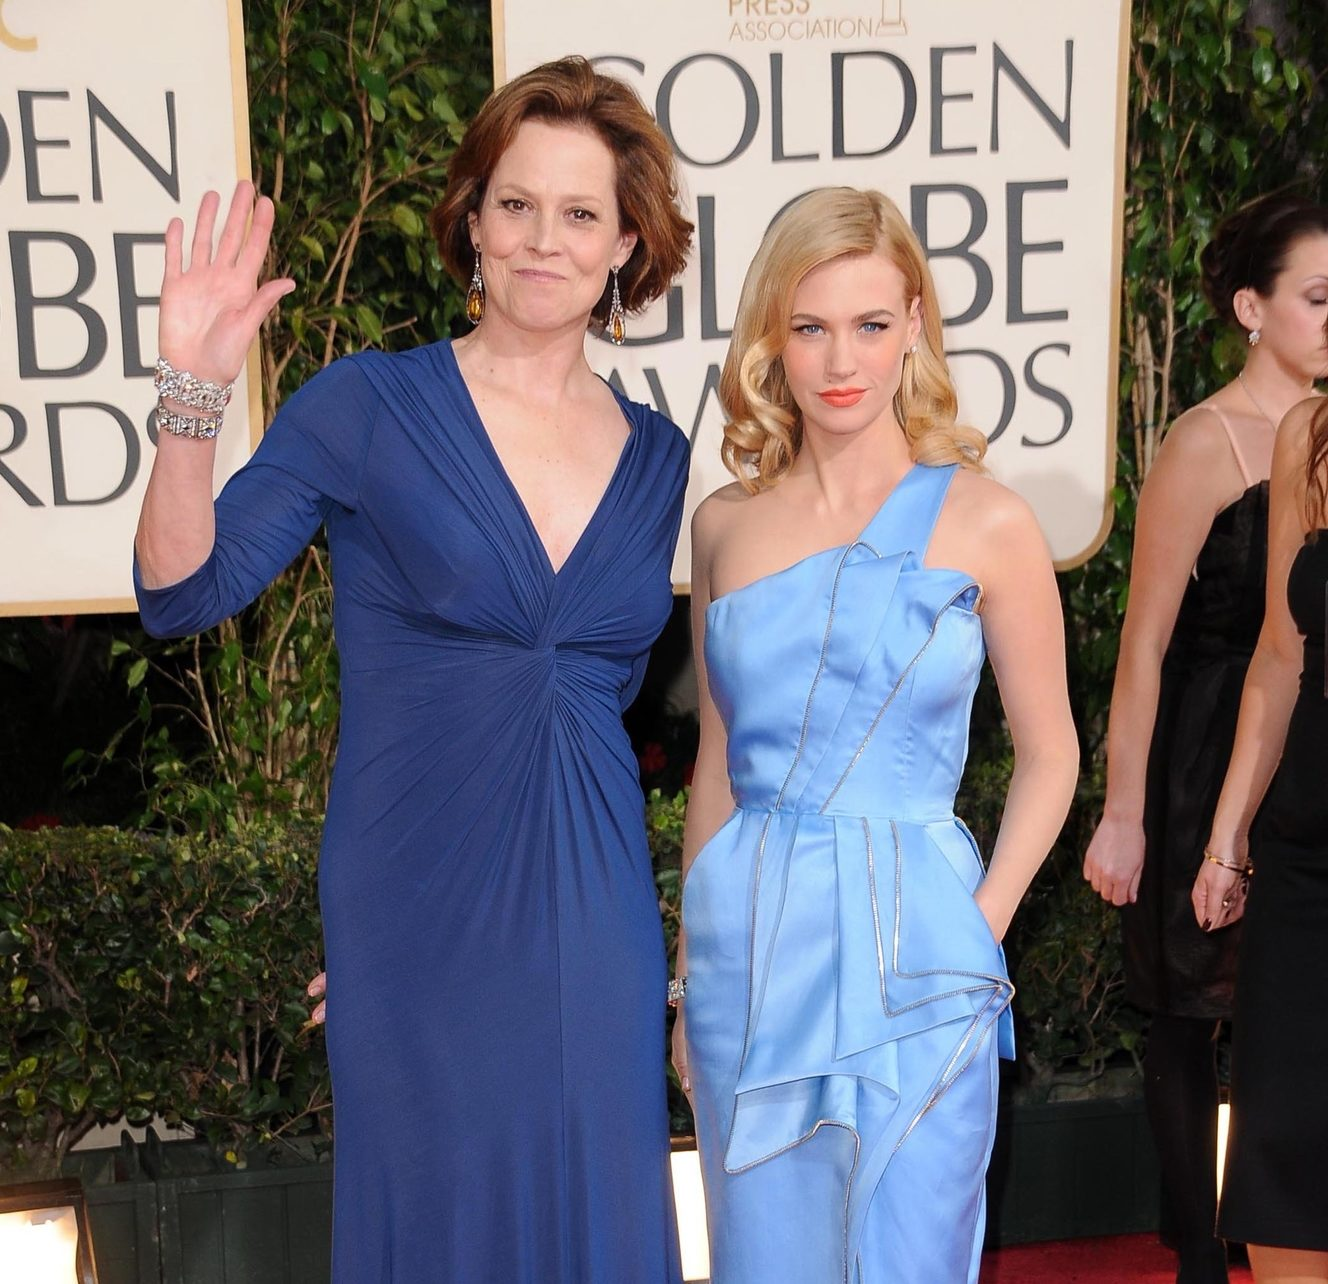 Sigourney Weaver e1609773305550 20 Things You Probably Didn't Know About Sigourney Weaver